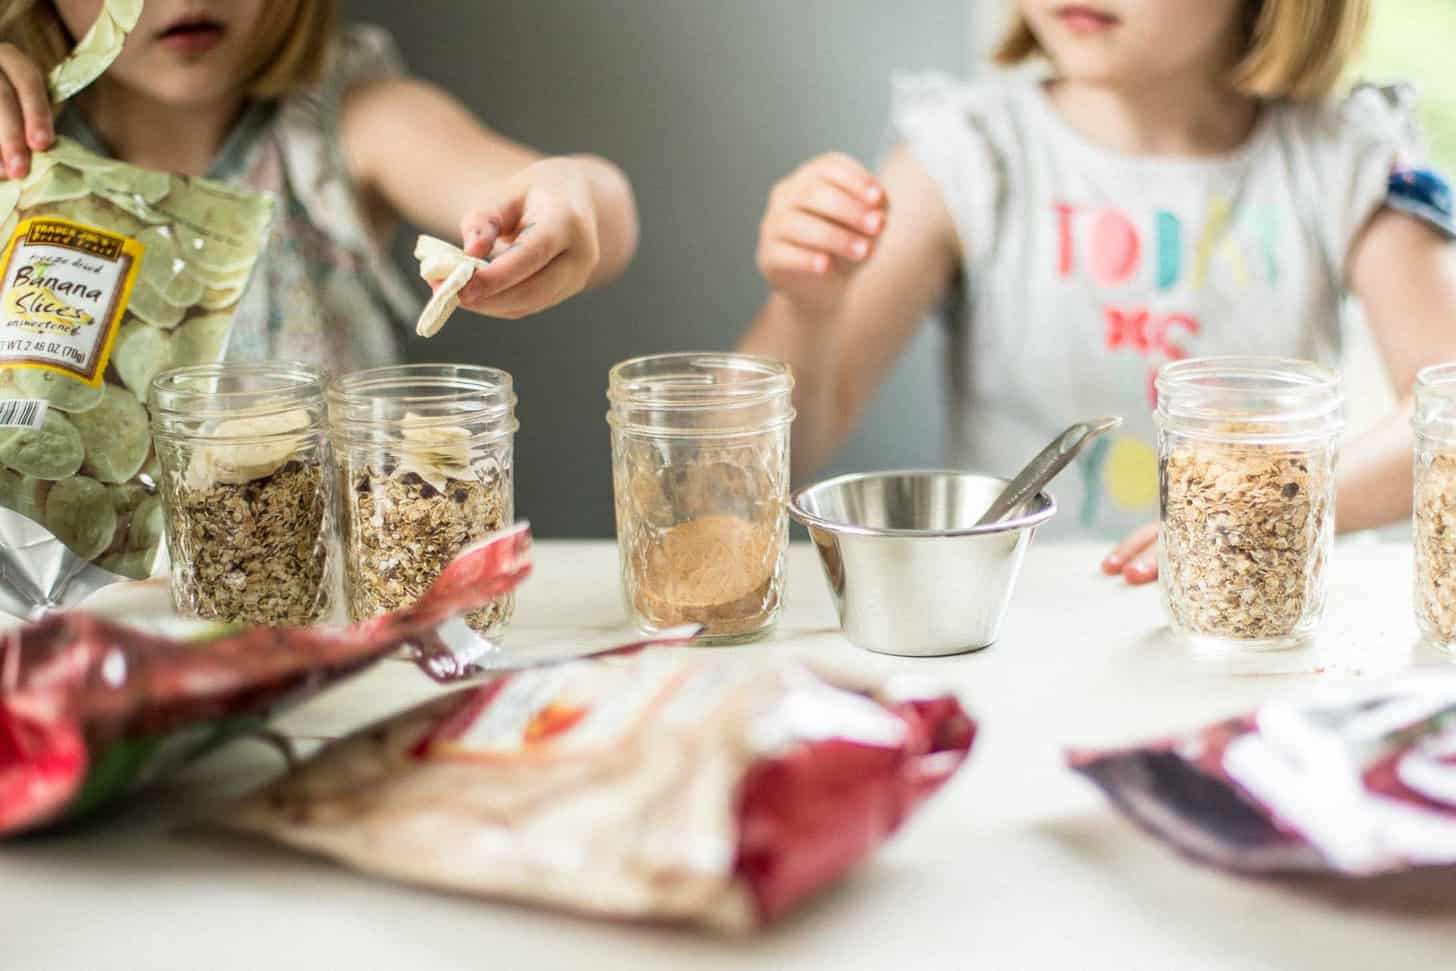 adding toppings to oatmeal